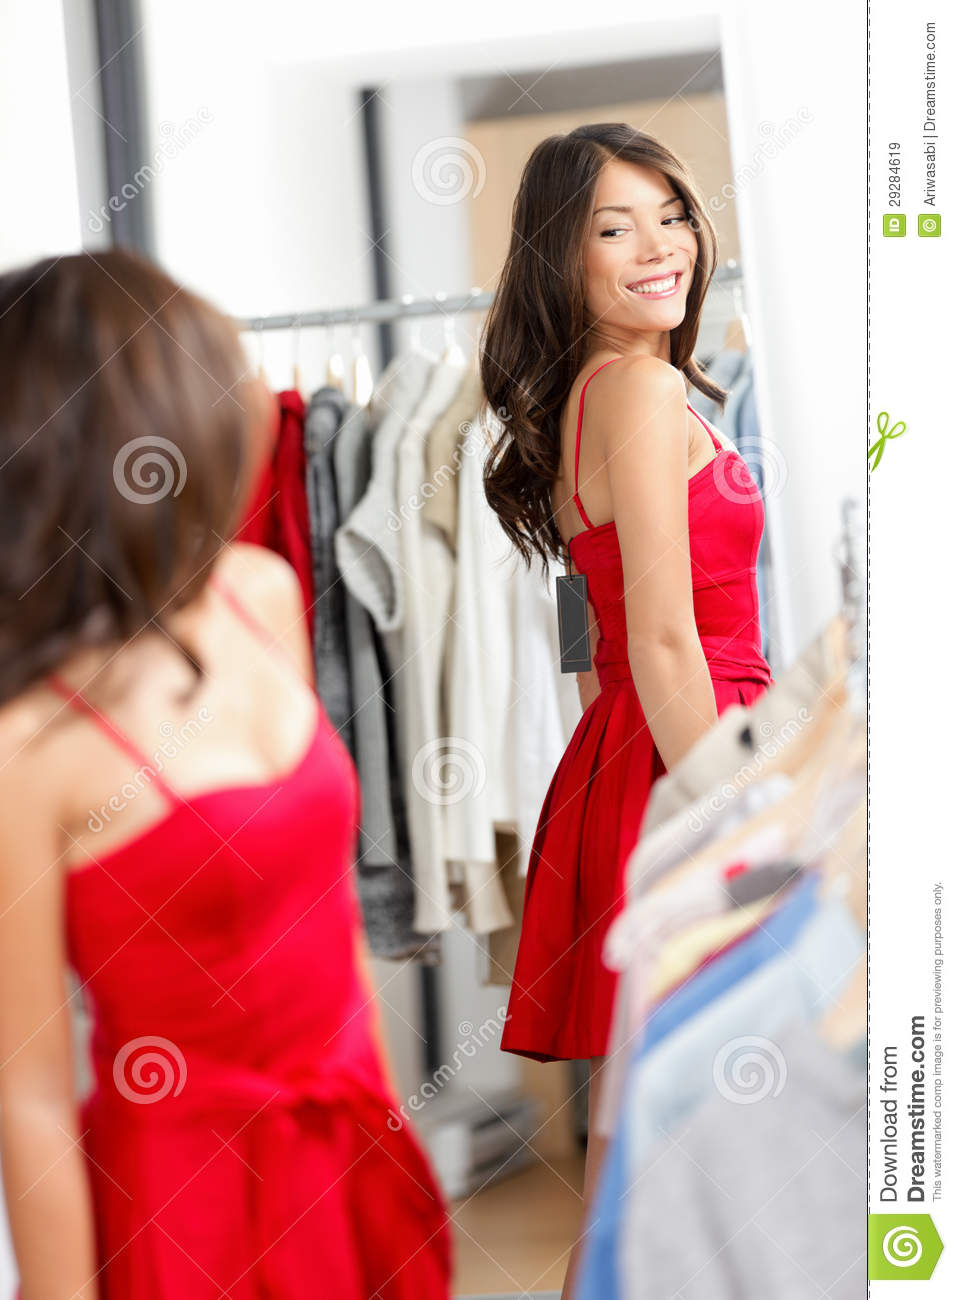 Royalty free stock images woman shopping looking in mirror trying